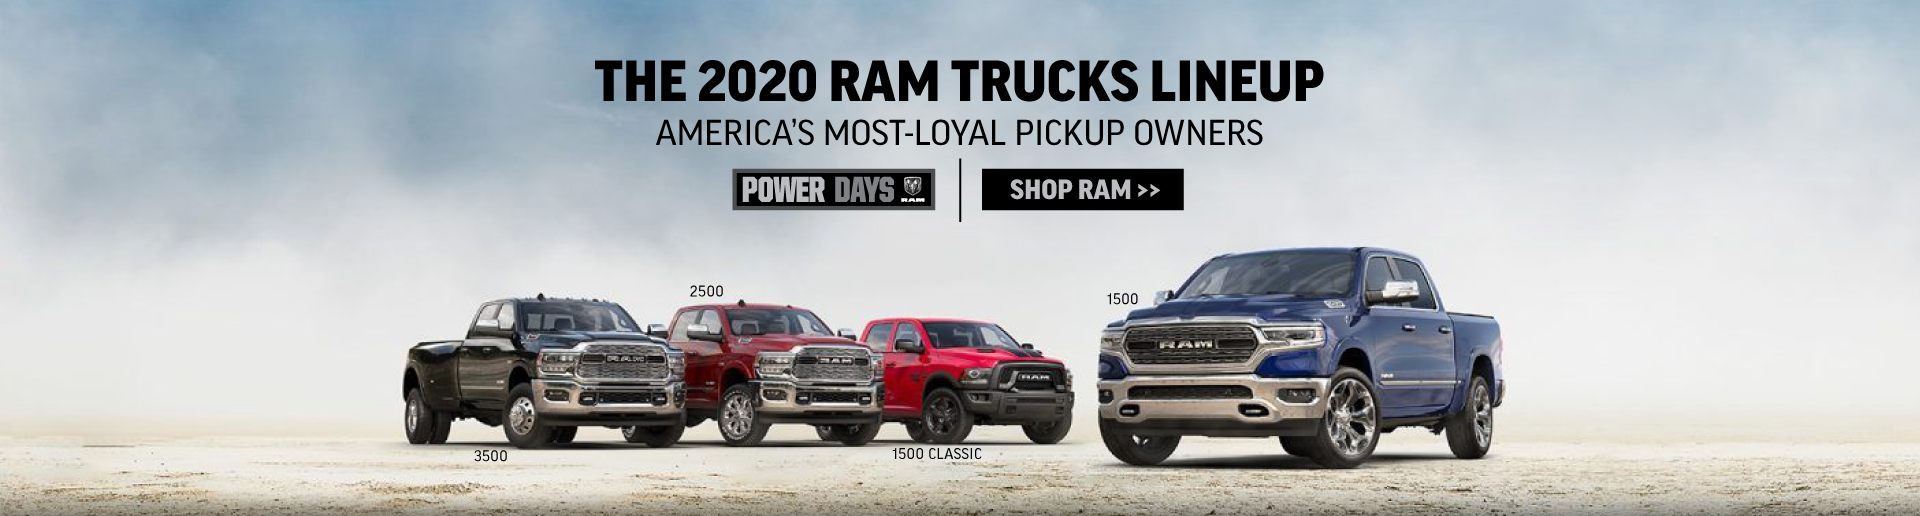 2020 Ram Generic october